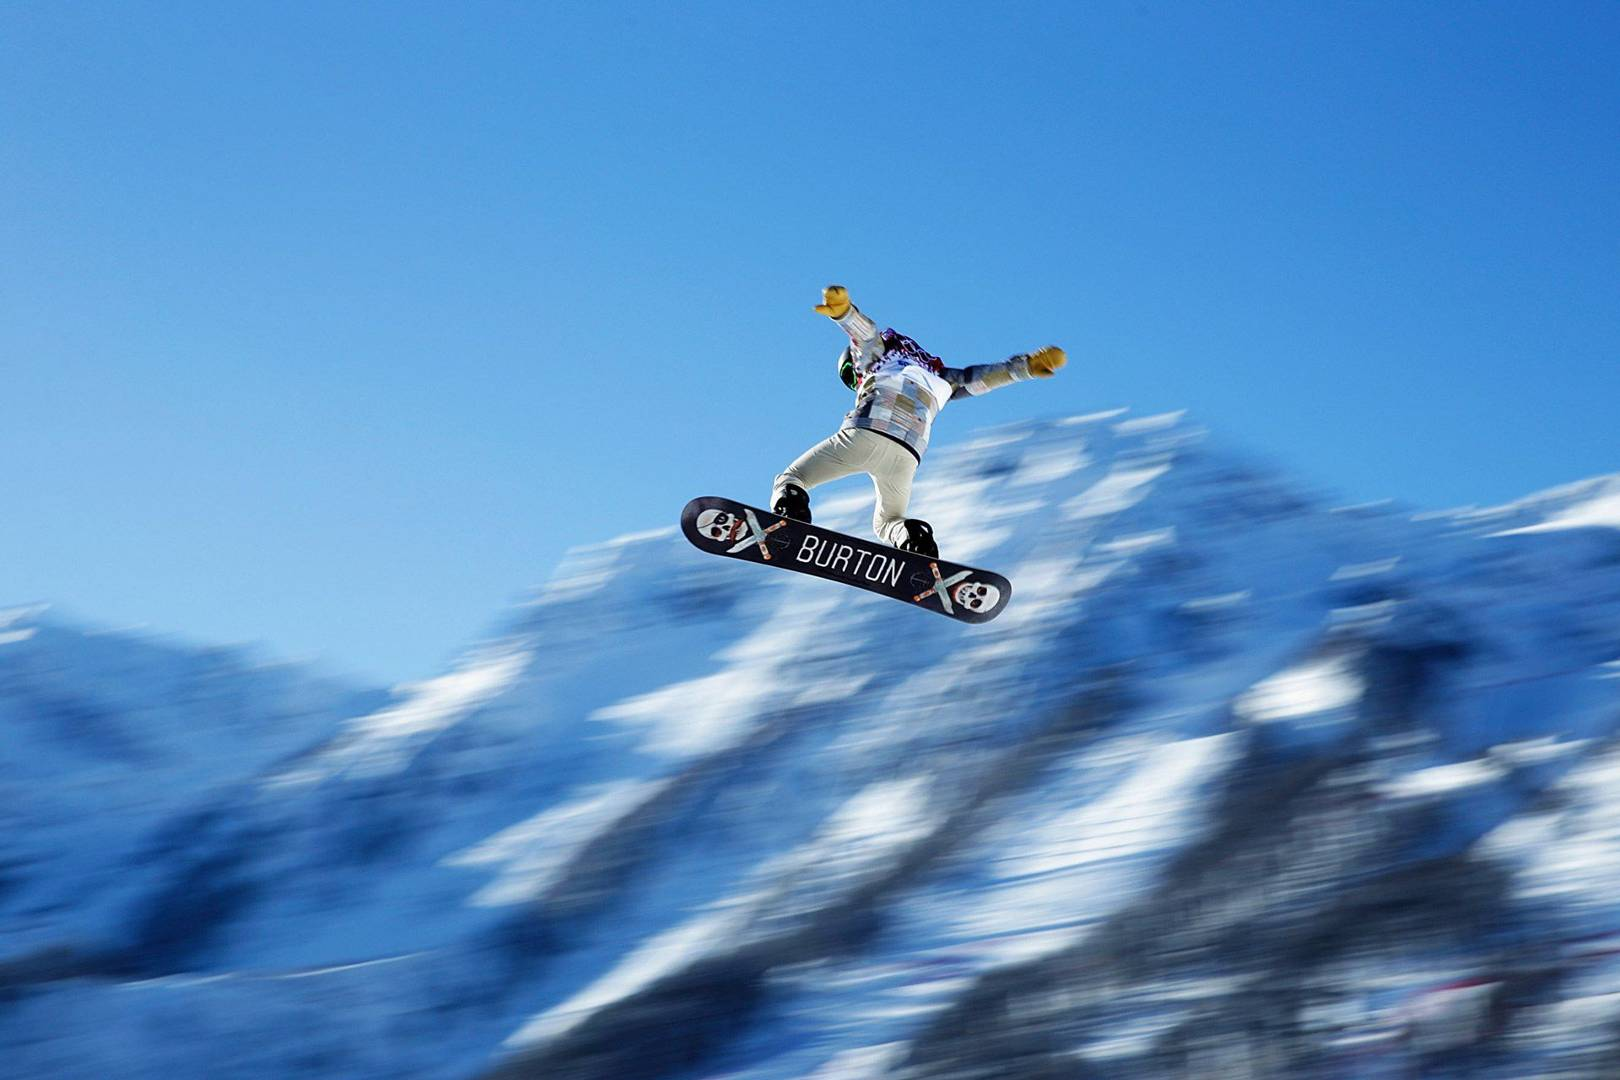 How to photograph the Sochi Winter Olympics, as told by a pro   WIRED UK